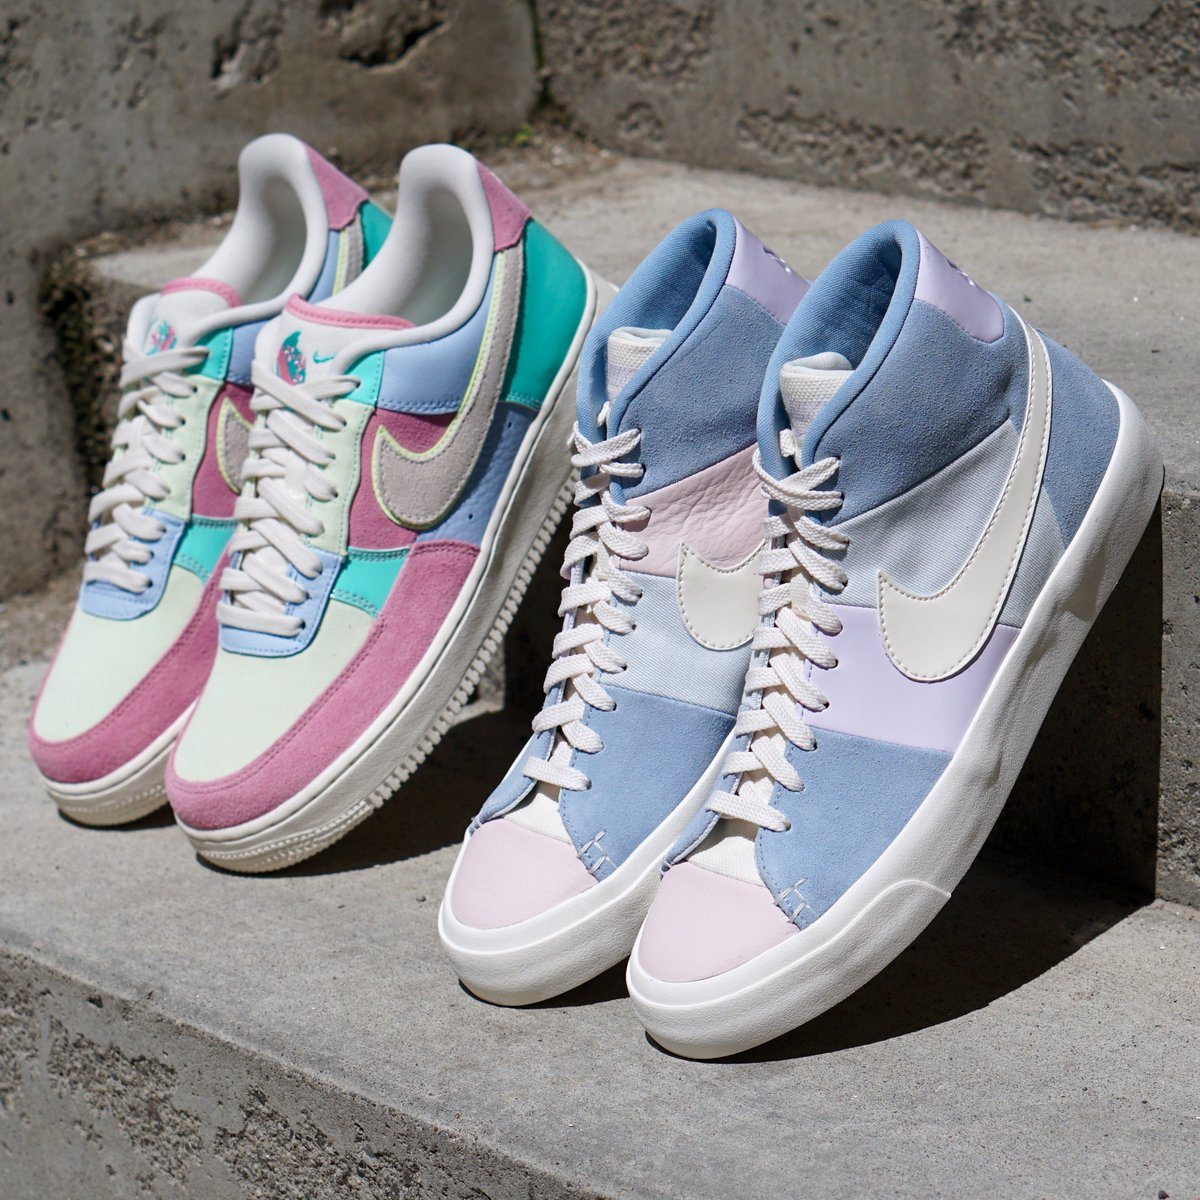 buy popular 393aa 228d5 Nike Air Force 1 Low 07 QS  Nike Blazer Premium QS